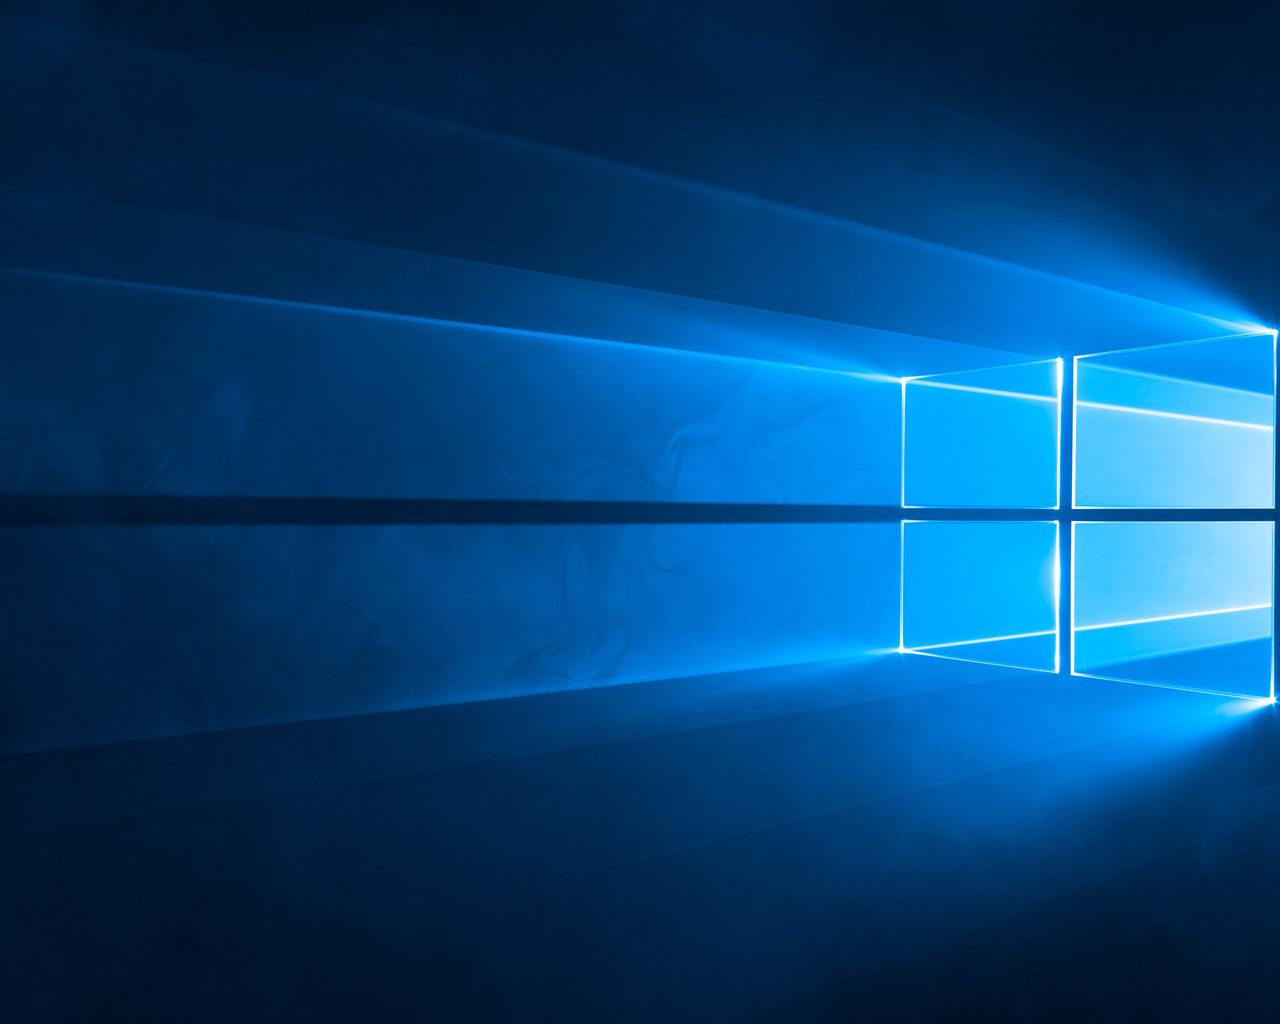 1280x1024 Windows 10 Original 1280x1024 Resolution Hd 4k